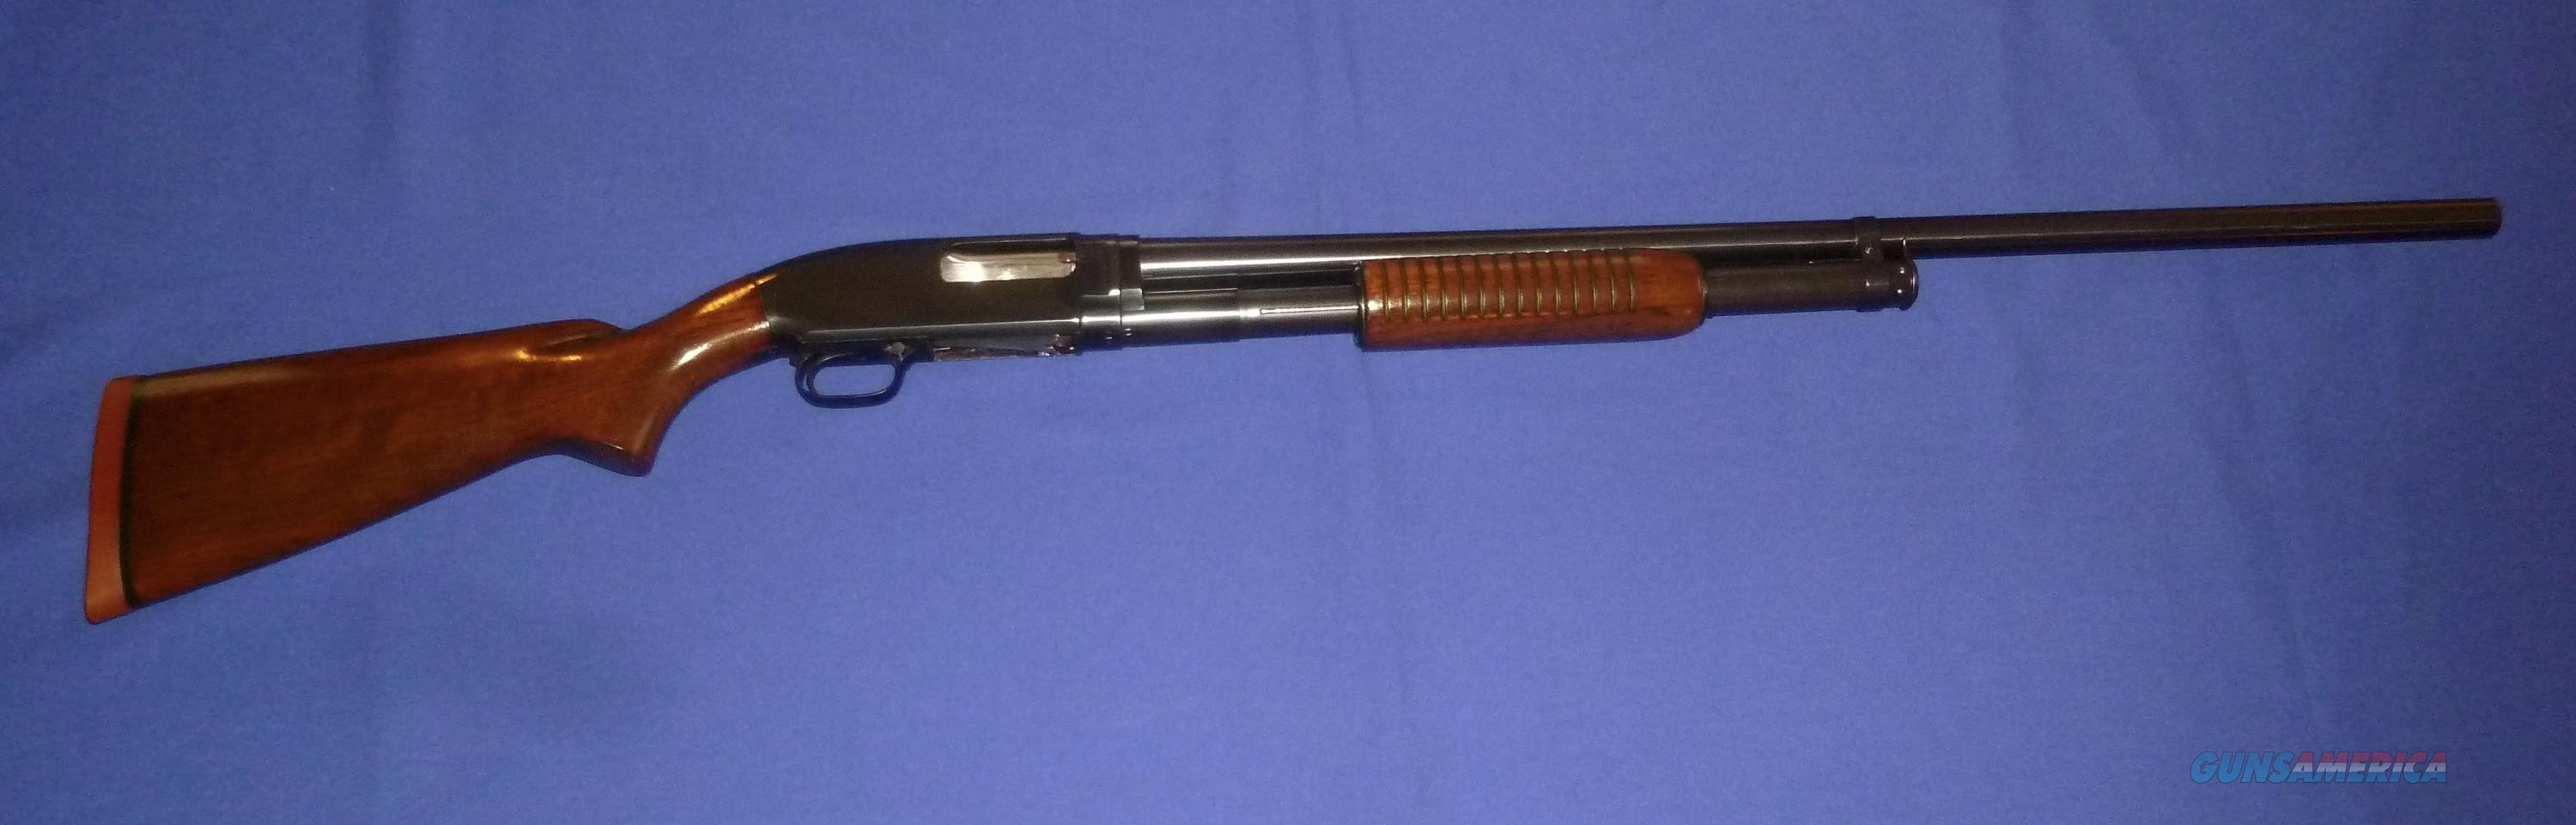 "WINCHESTER MODEL 12 HEAVY DUCK 12 GAUGE 3"" MAGNUM PUMP SHOTGUN  Guns > Shotguns > Winchester Shotguns - Modern > Pump Action > Hunting"